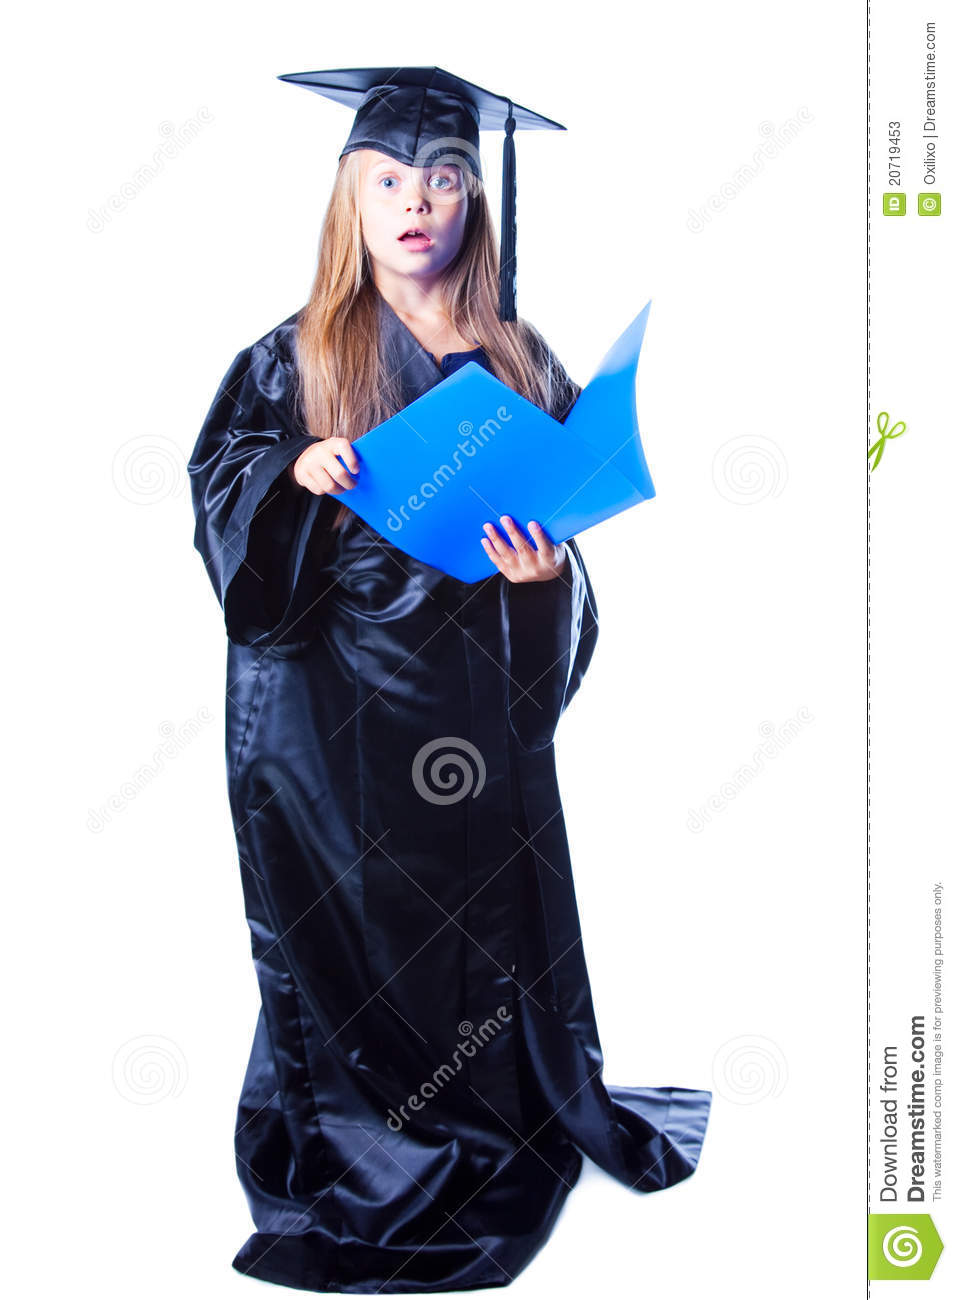 Girl With Bachelor Hat And Graduation Gown Stock Image - Image of ...